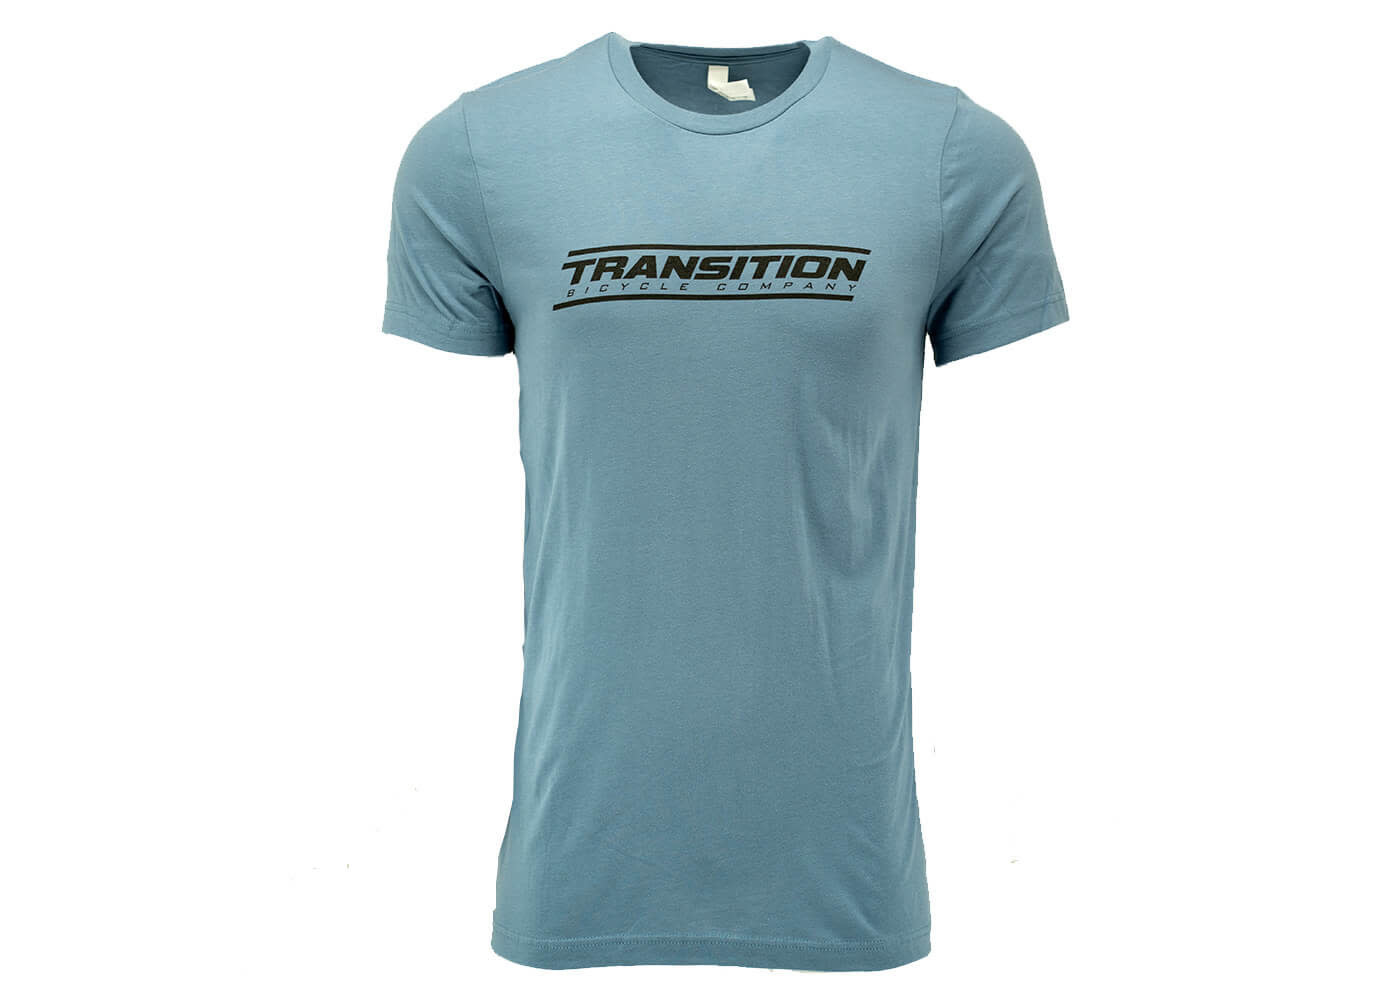 Transition T-Shirt: Transition Logo (Steel Blue, X-Large)